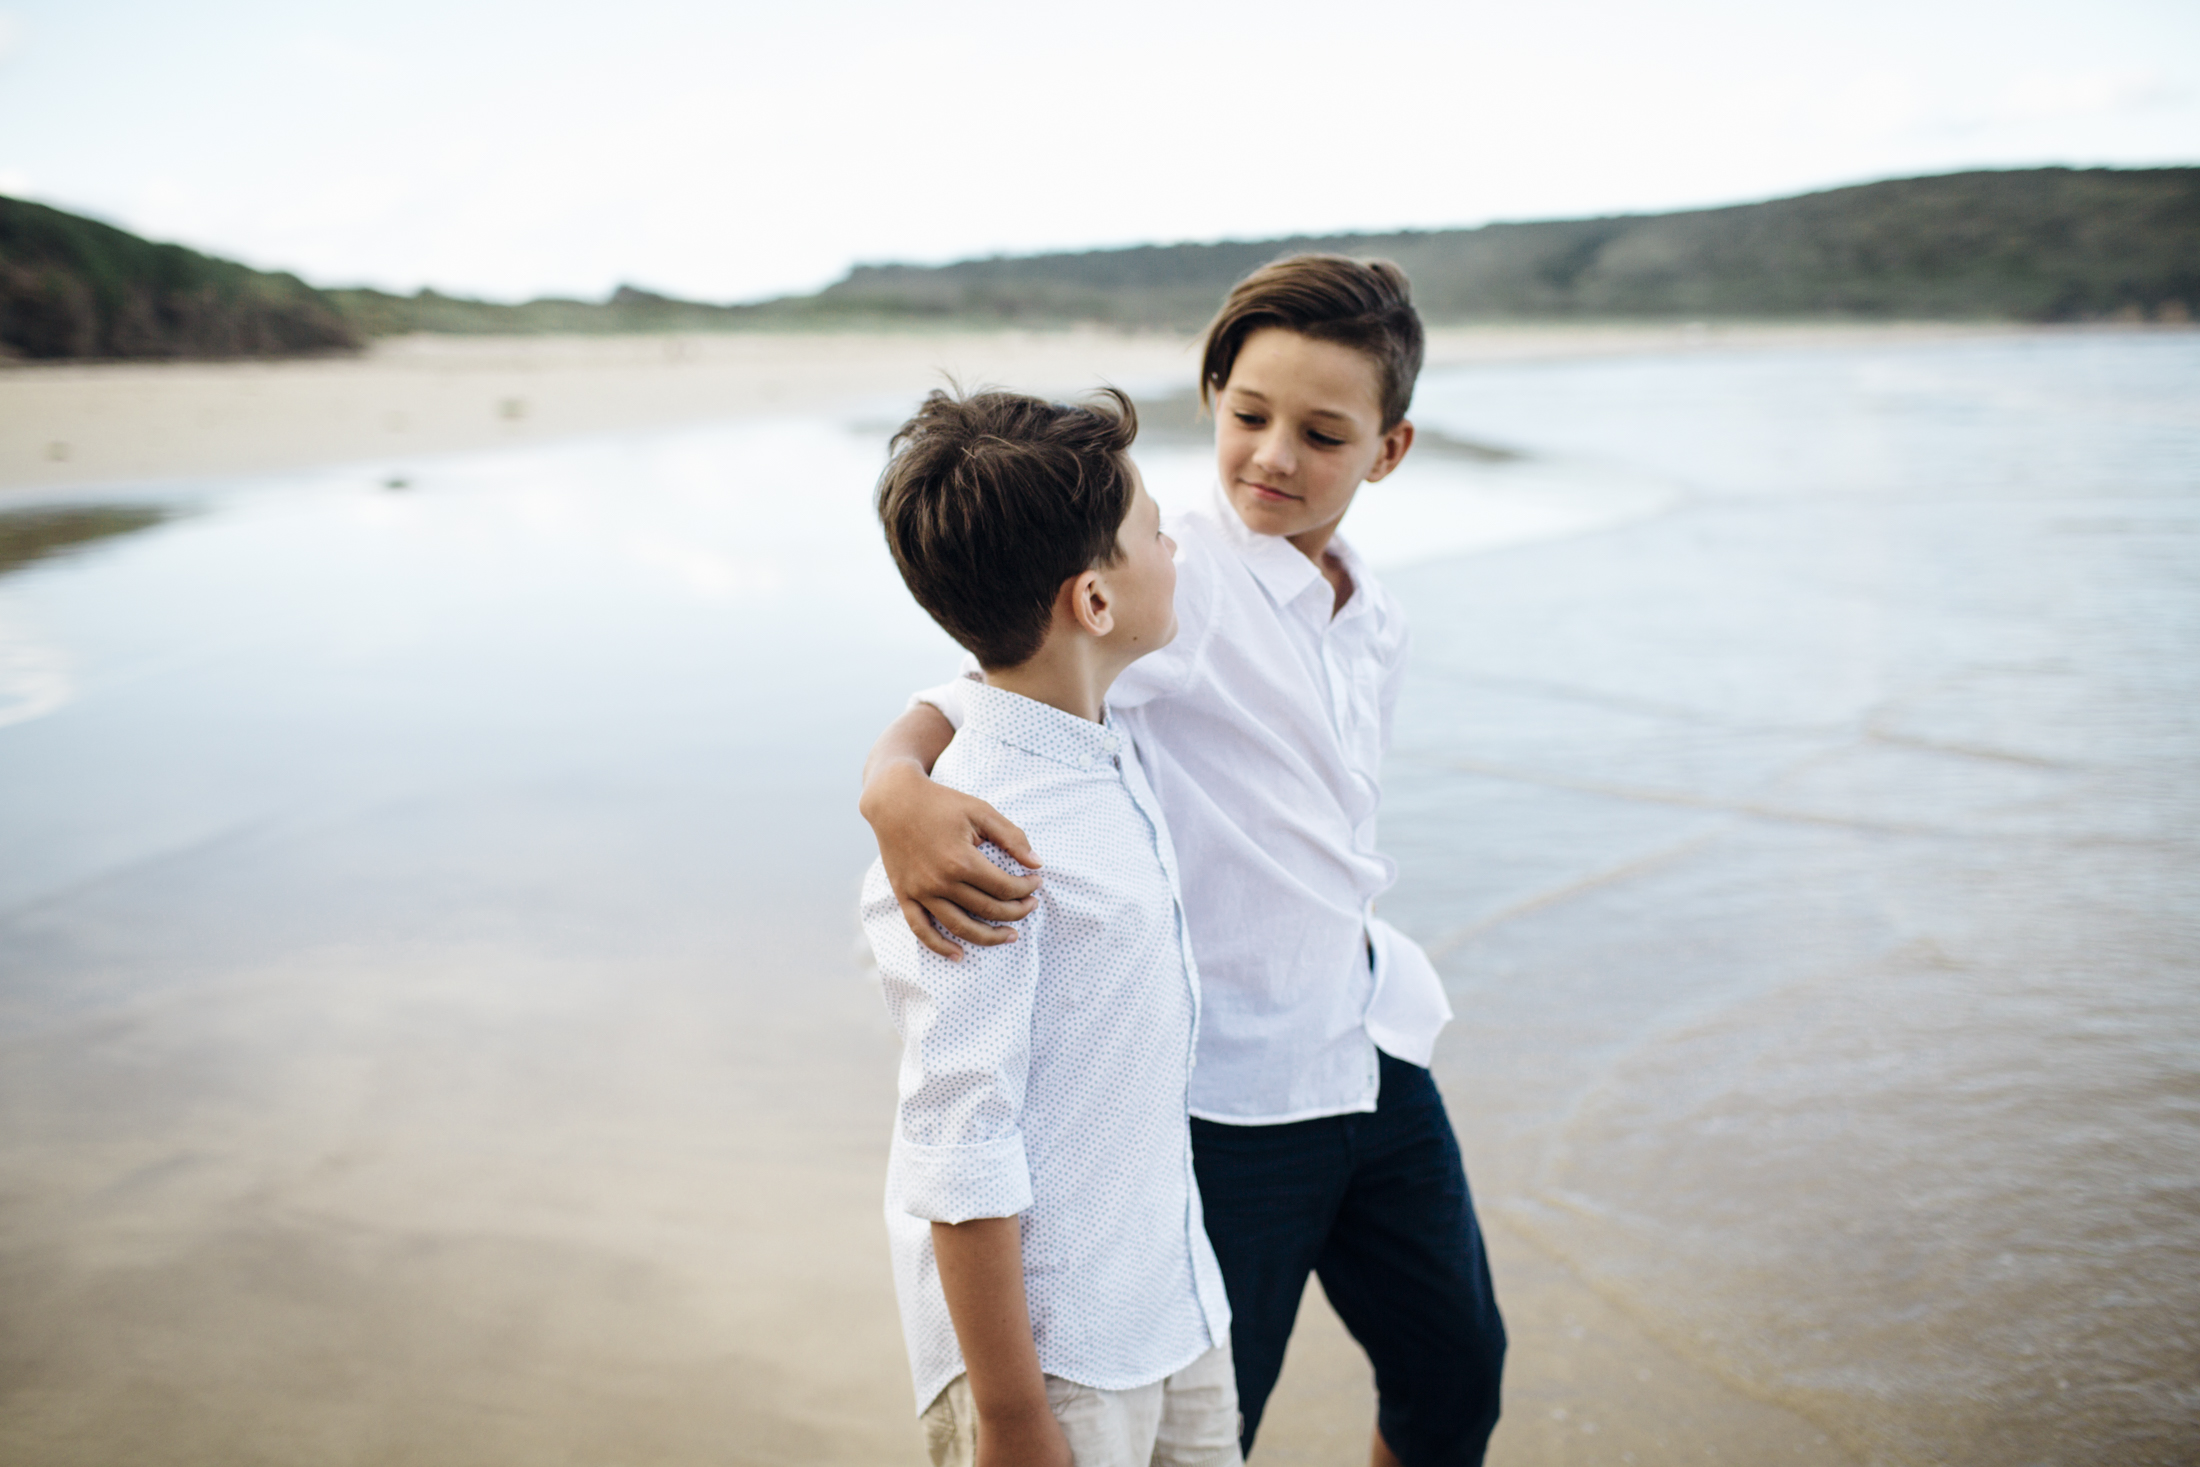 sheridan_nilsson_northern_beaches_lifestyle_family_photographer.027.jpg